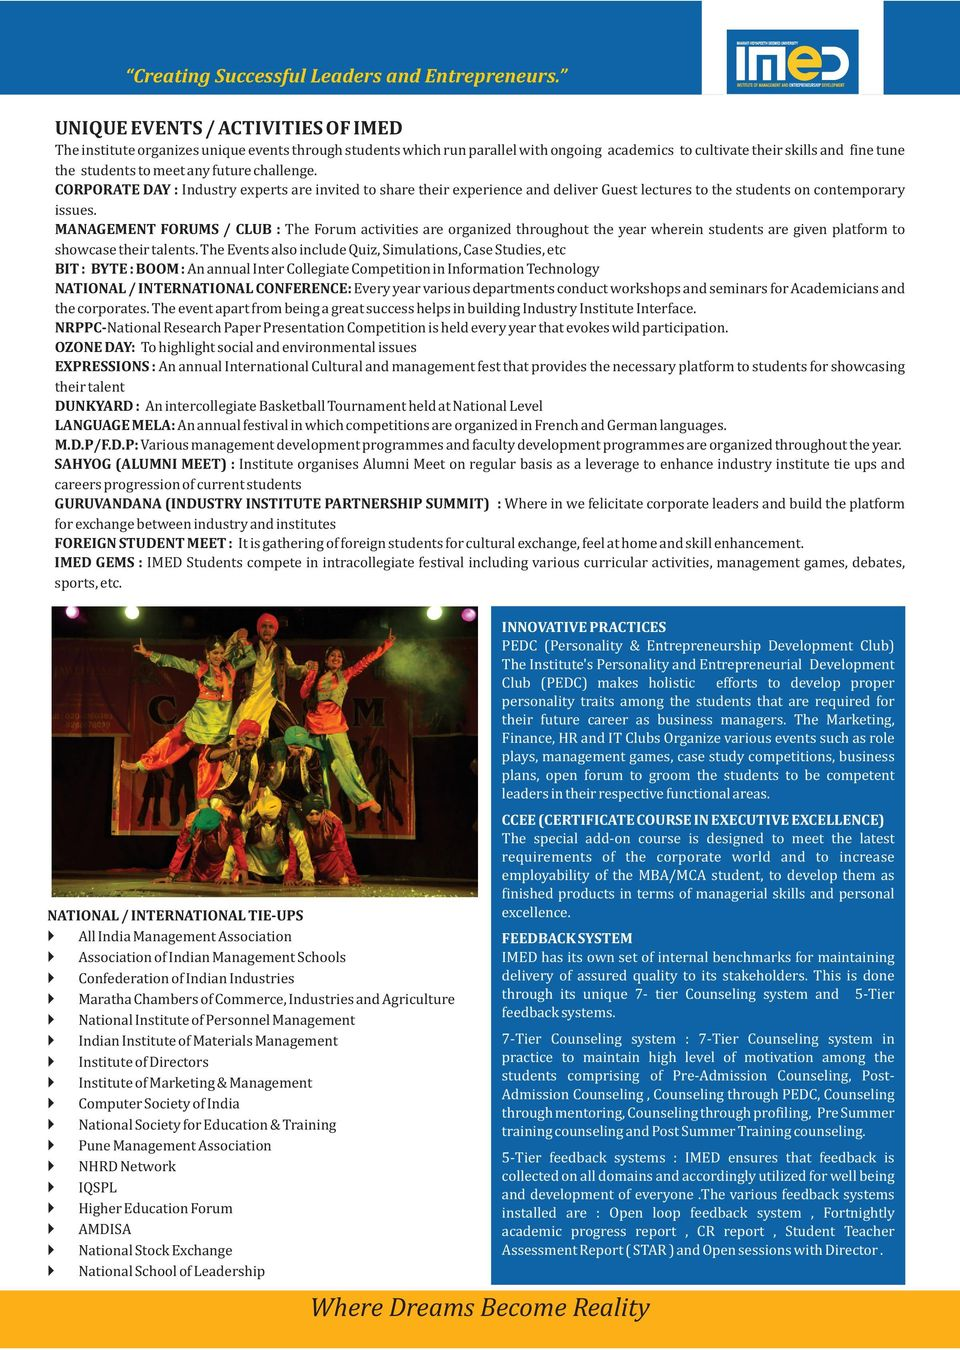 Institute Of Management And Entrepreneurship Development Erandawane Instructional Pamphlet On Sailing Forums Off Topic Forum Club The Activities Are Organized Throughout Year Wherein Students